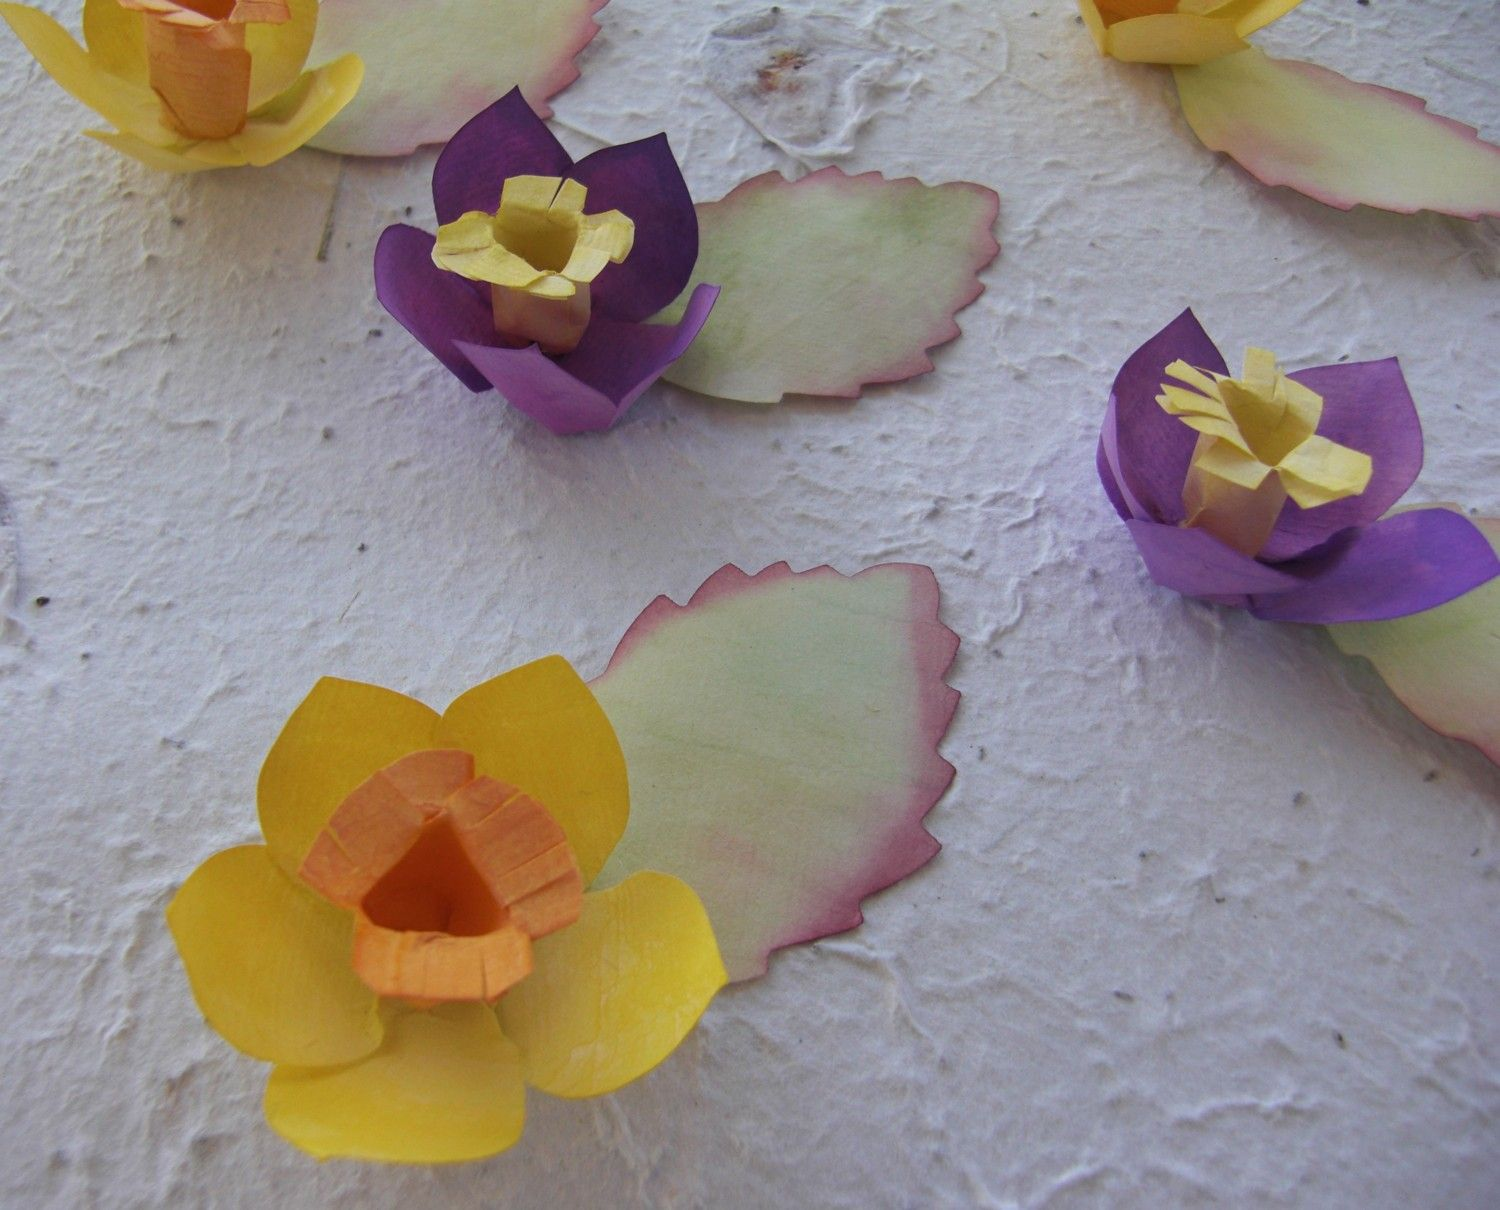 Daffodil Place Cards (25) - wedding place cards, paper flowers, wedding place card holder alternative. $50.00, via Etsy.